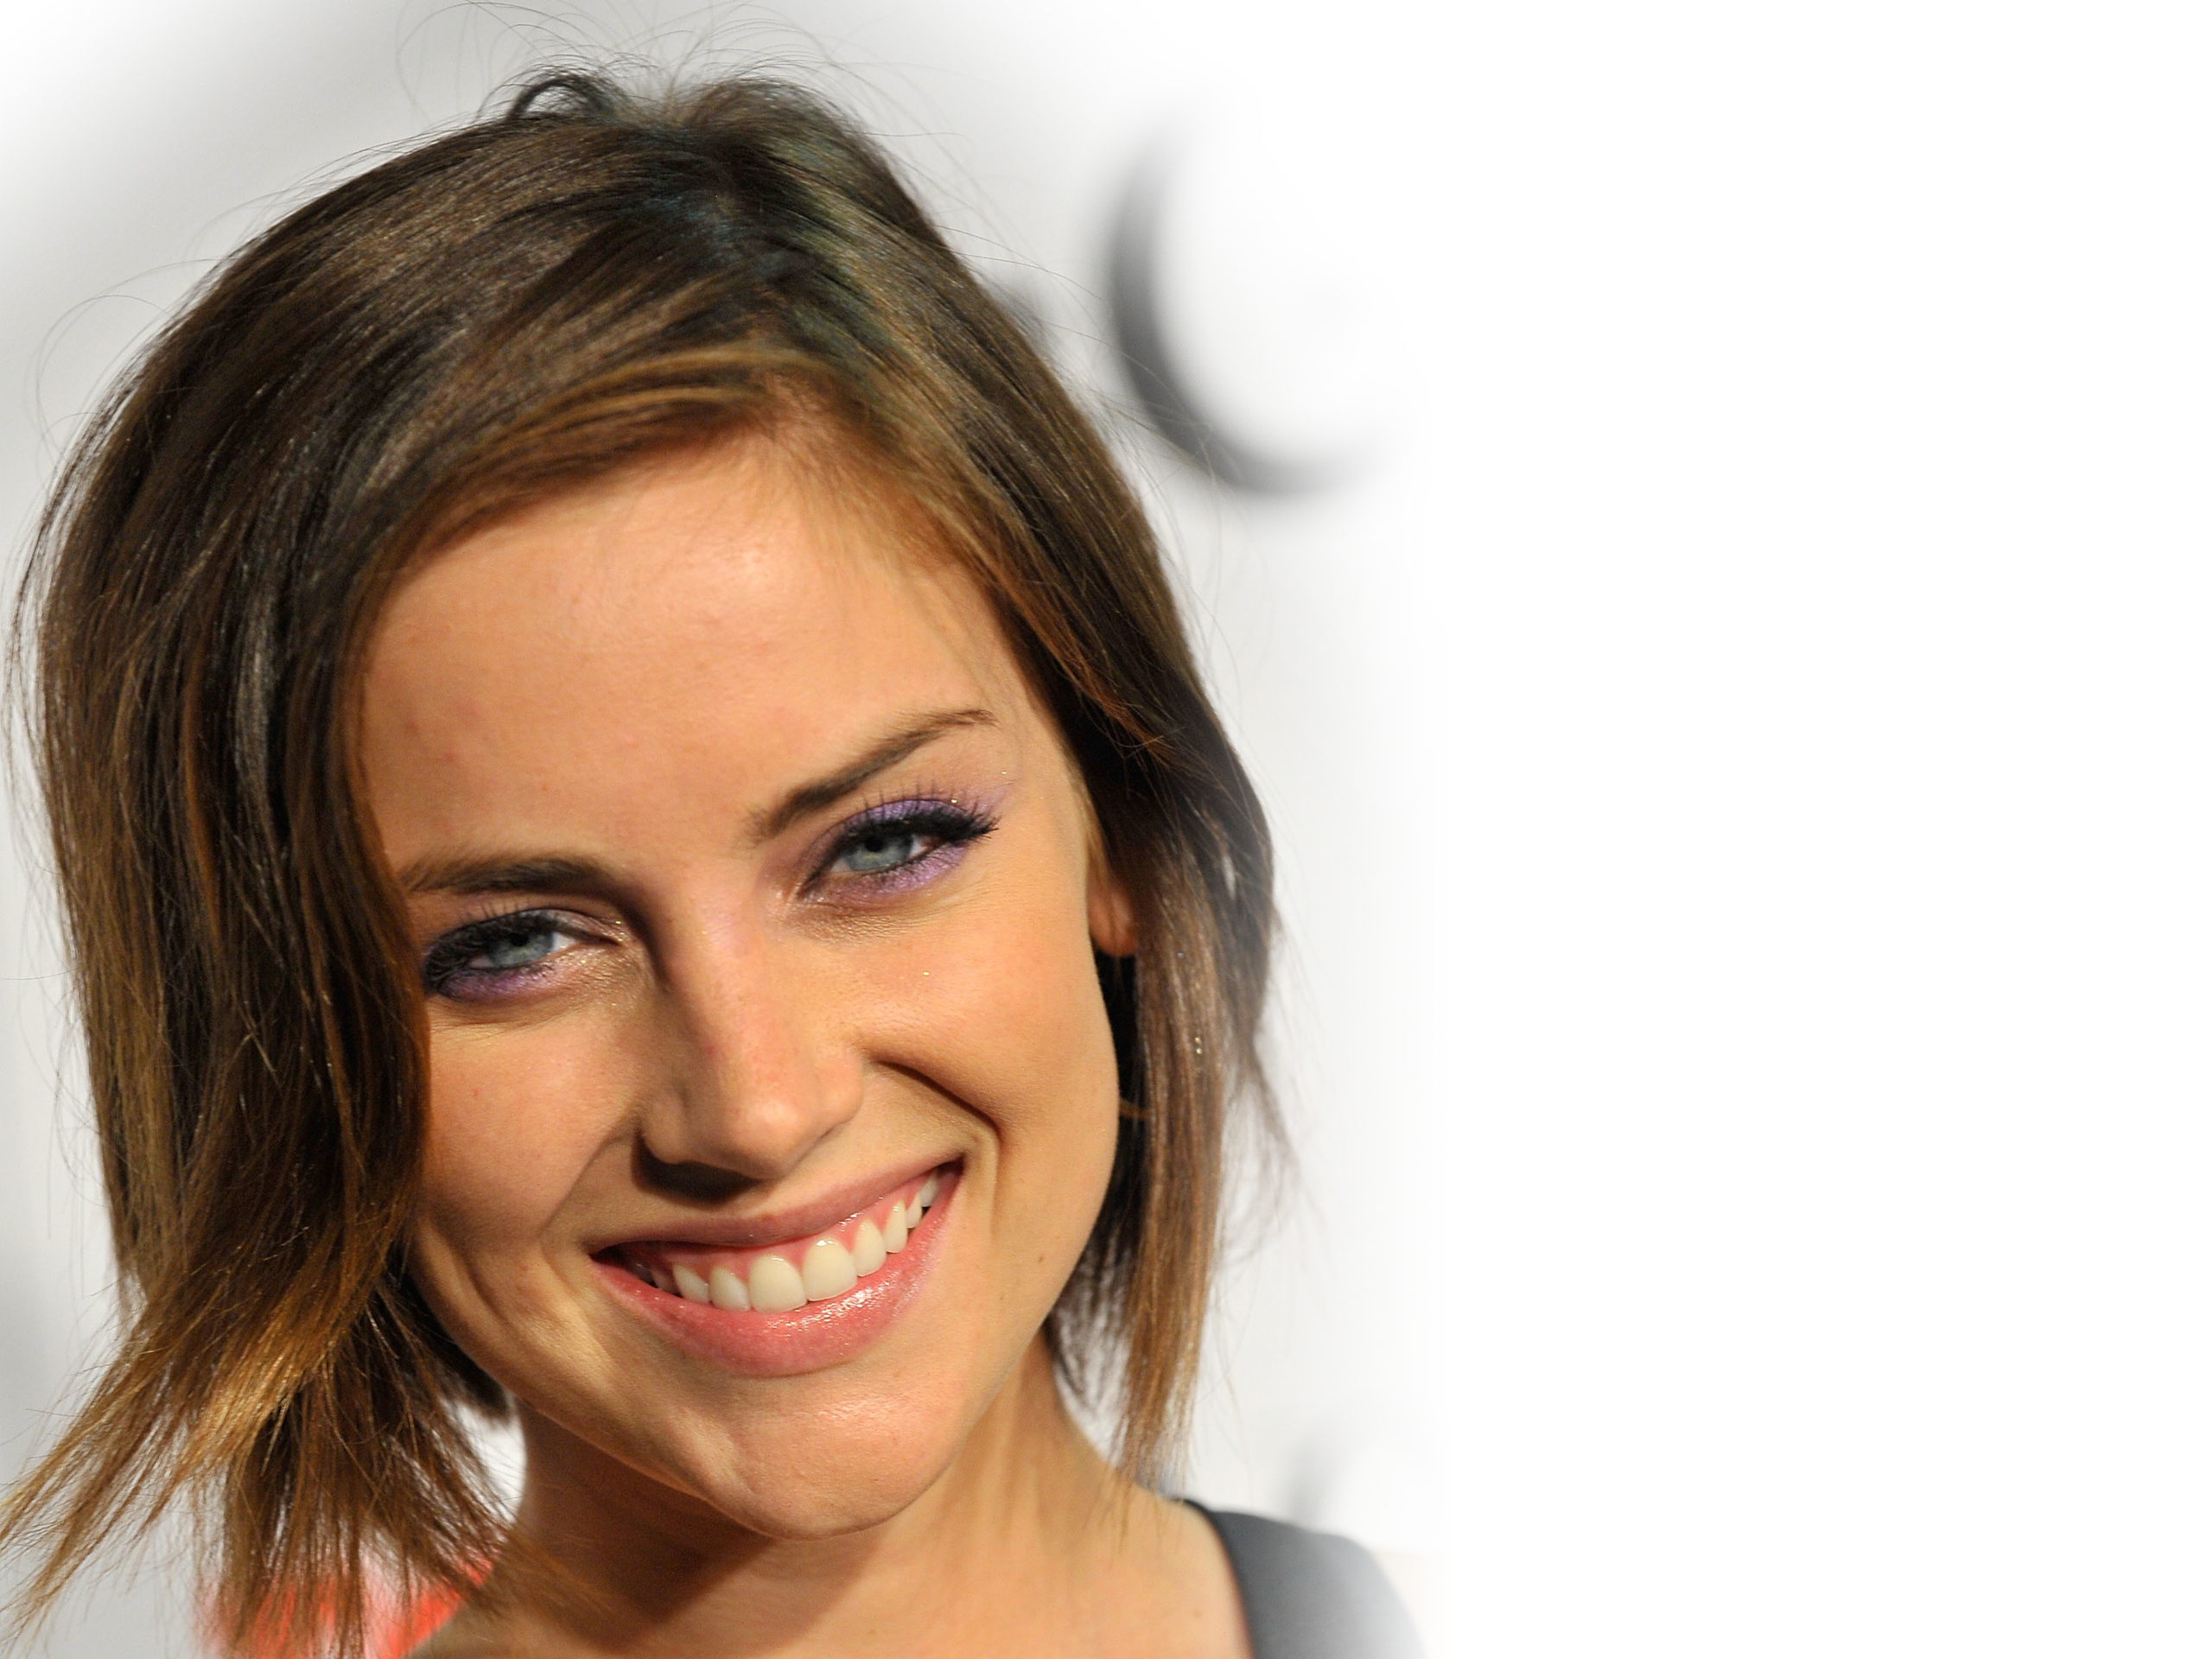 jessica stroup smile wallpaper 51136